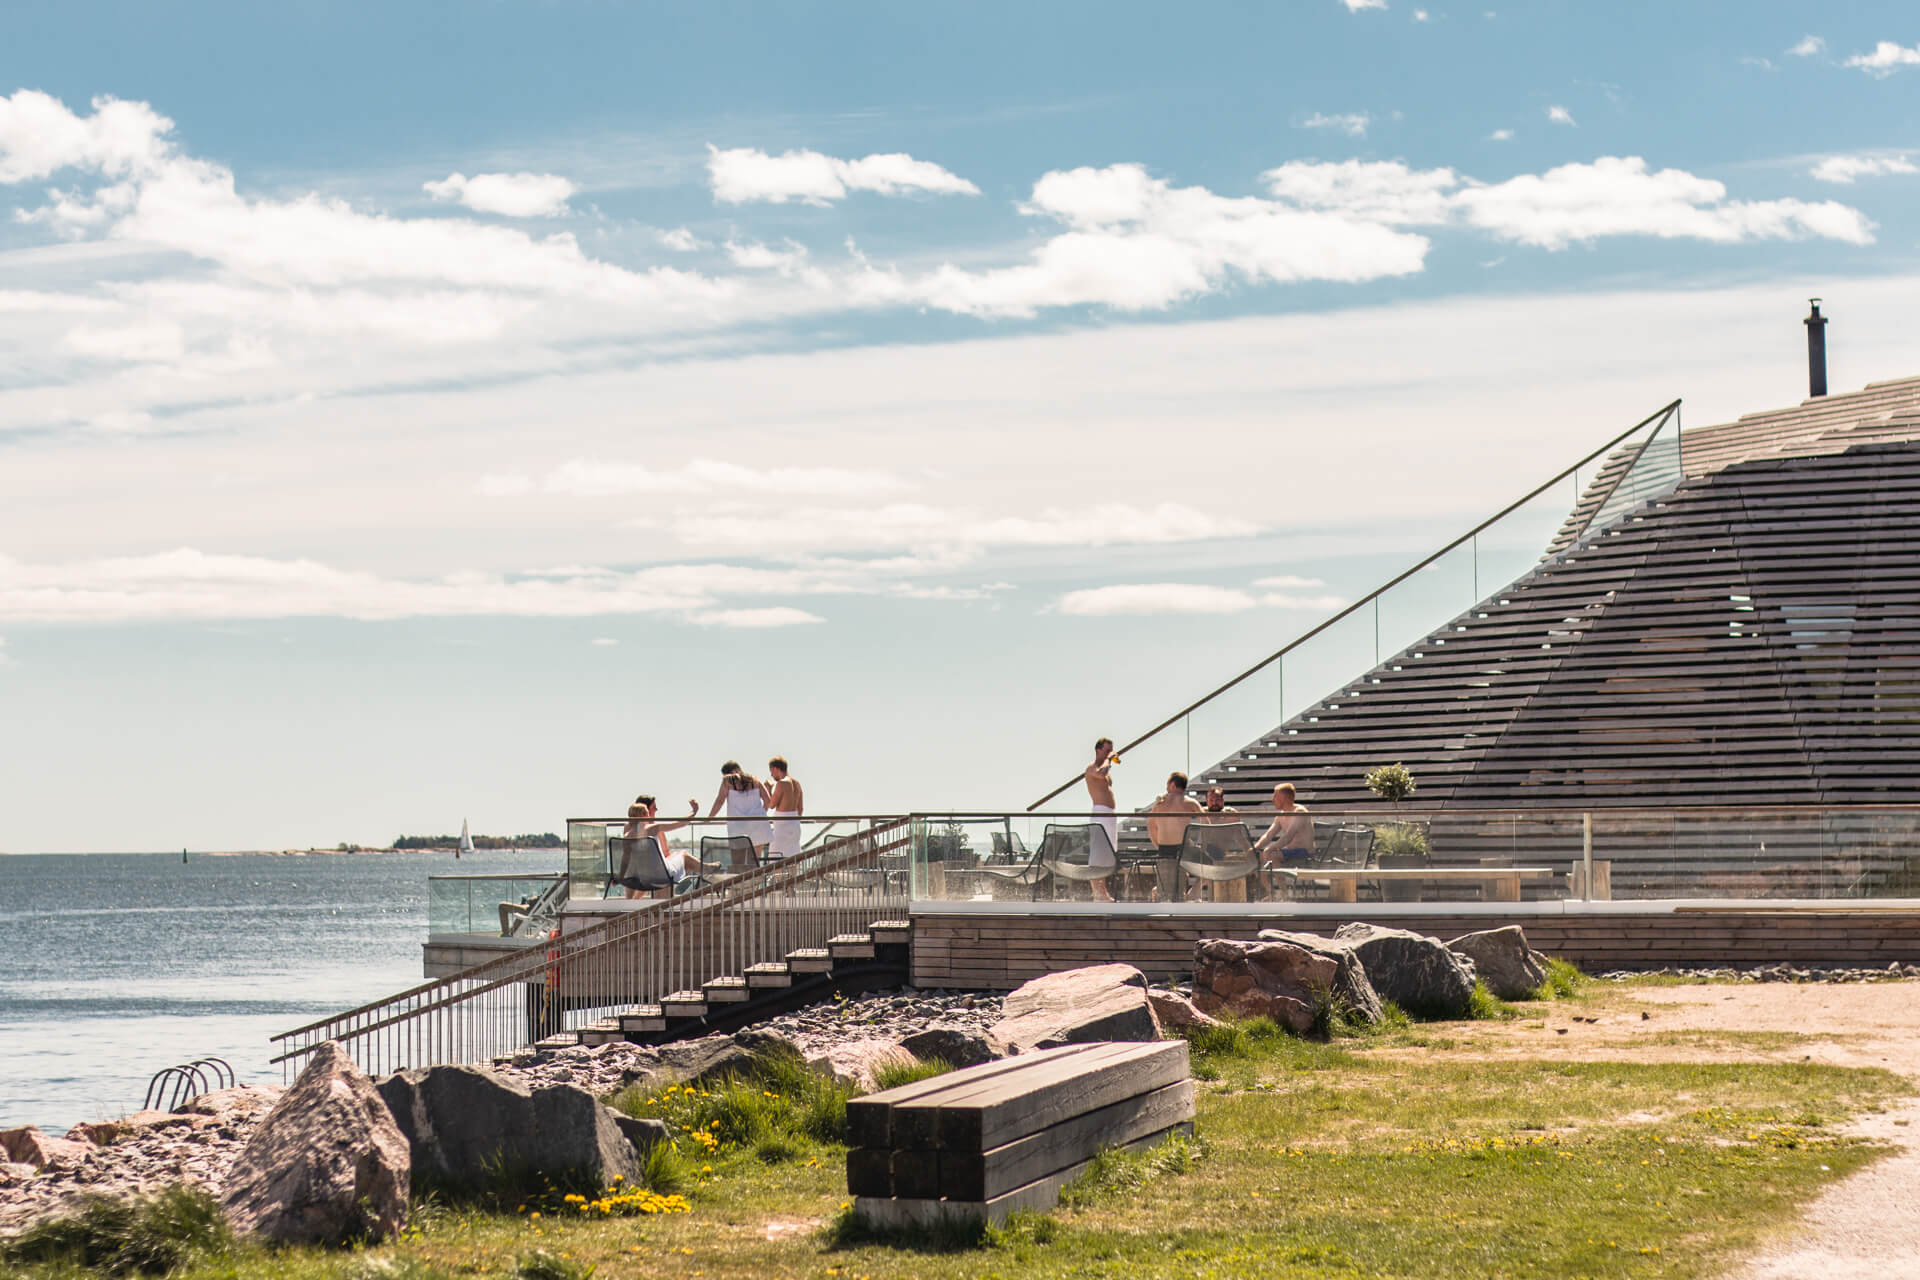 Löyly is THE place for locals and visitors to enjoy sauna with a view!